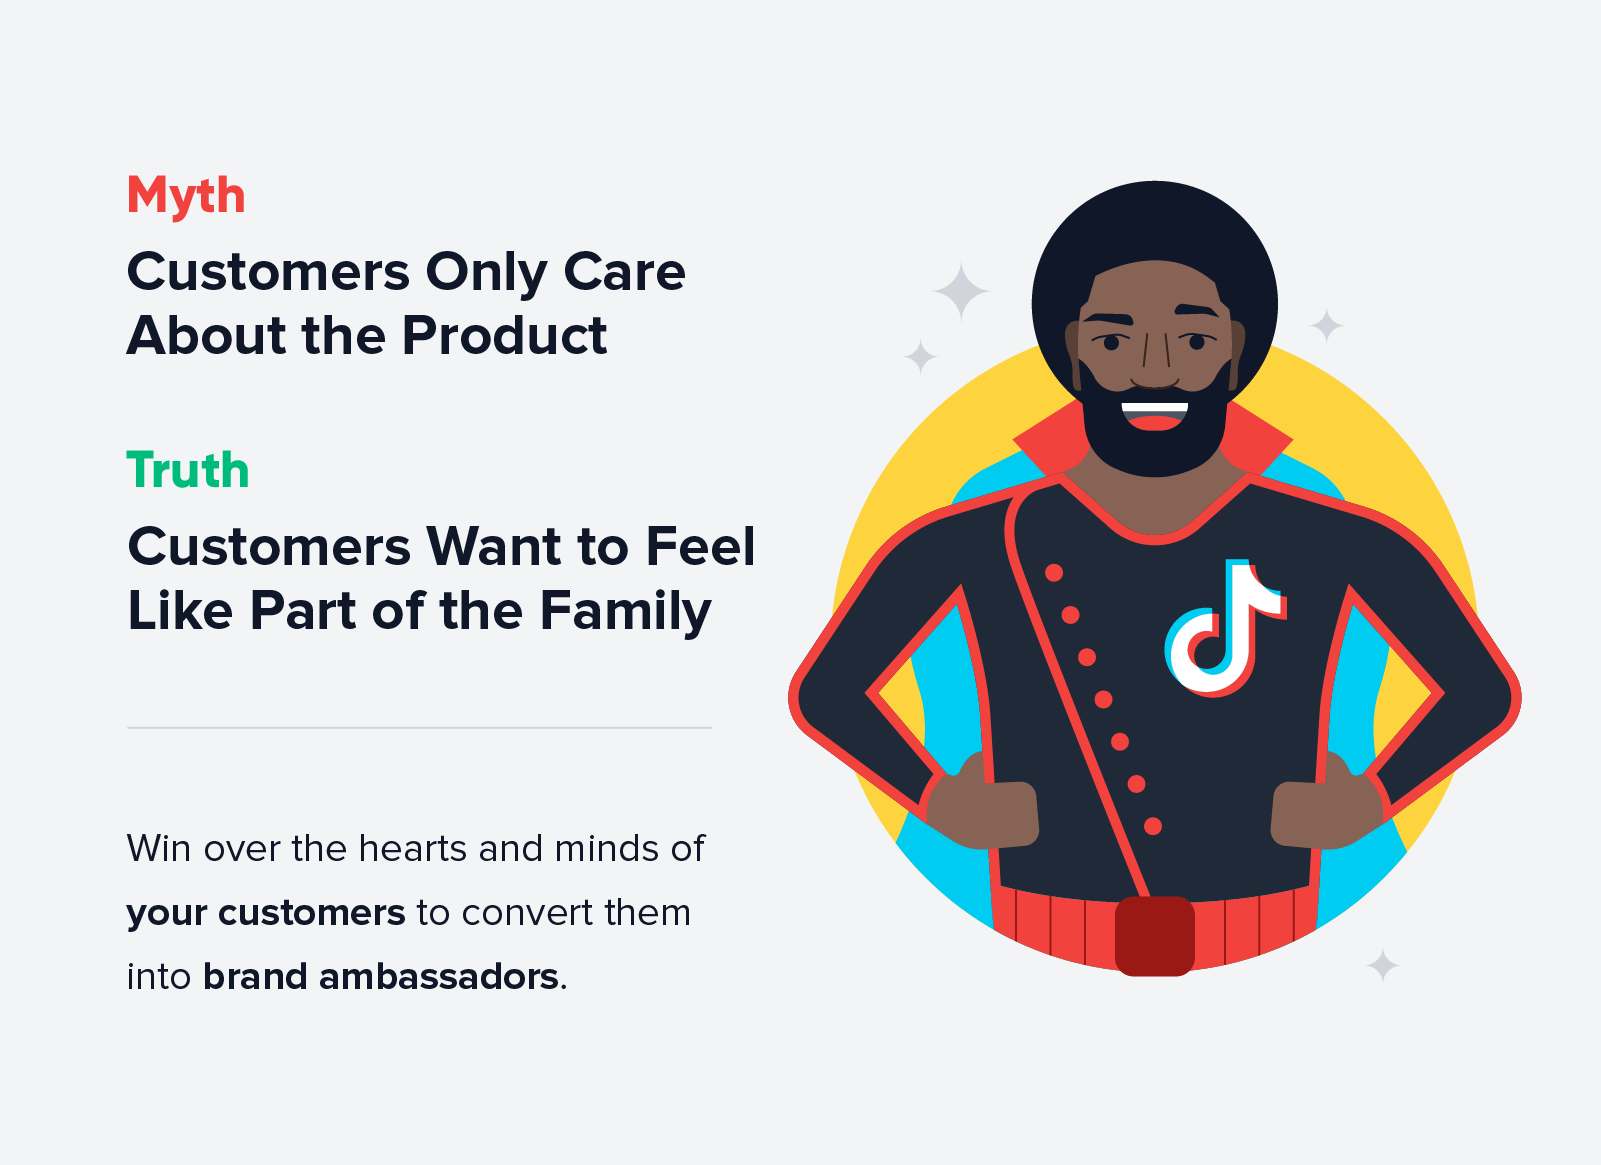 Customers want to feel like part of the family